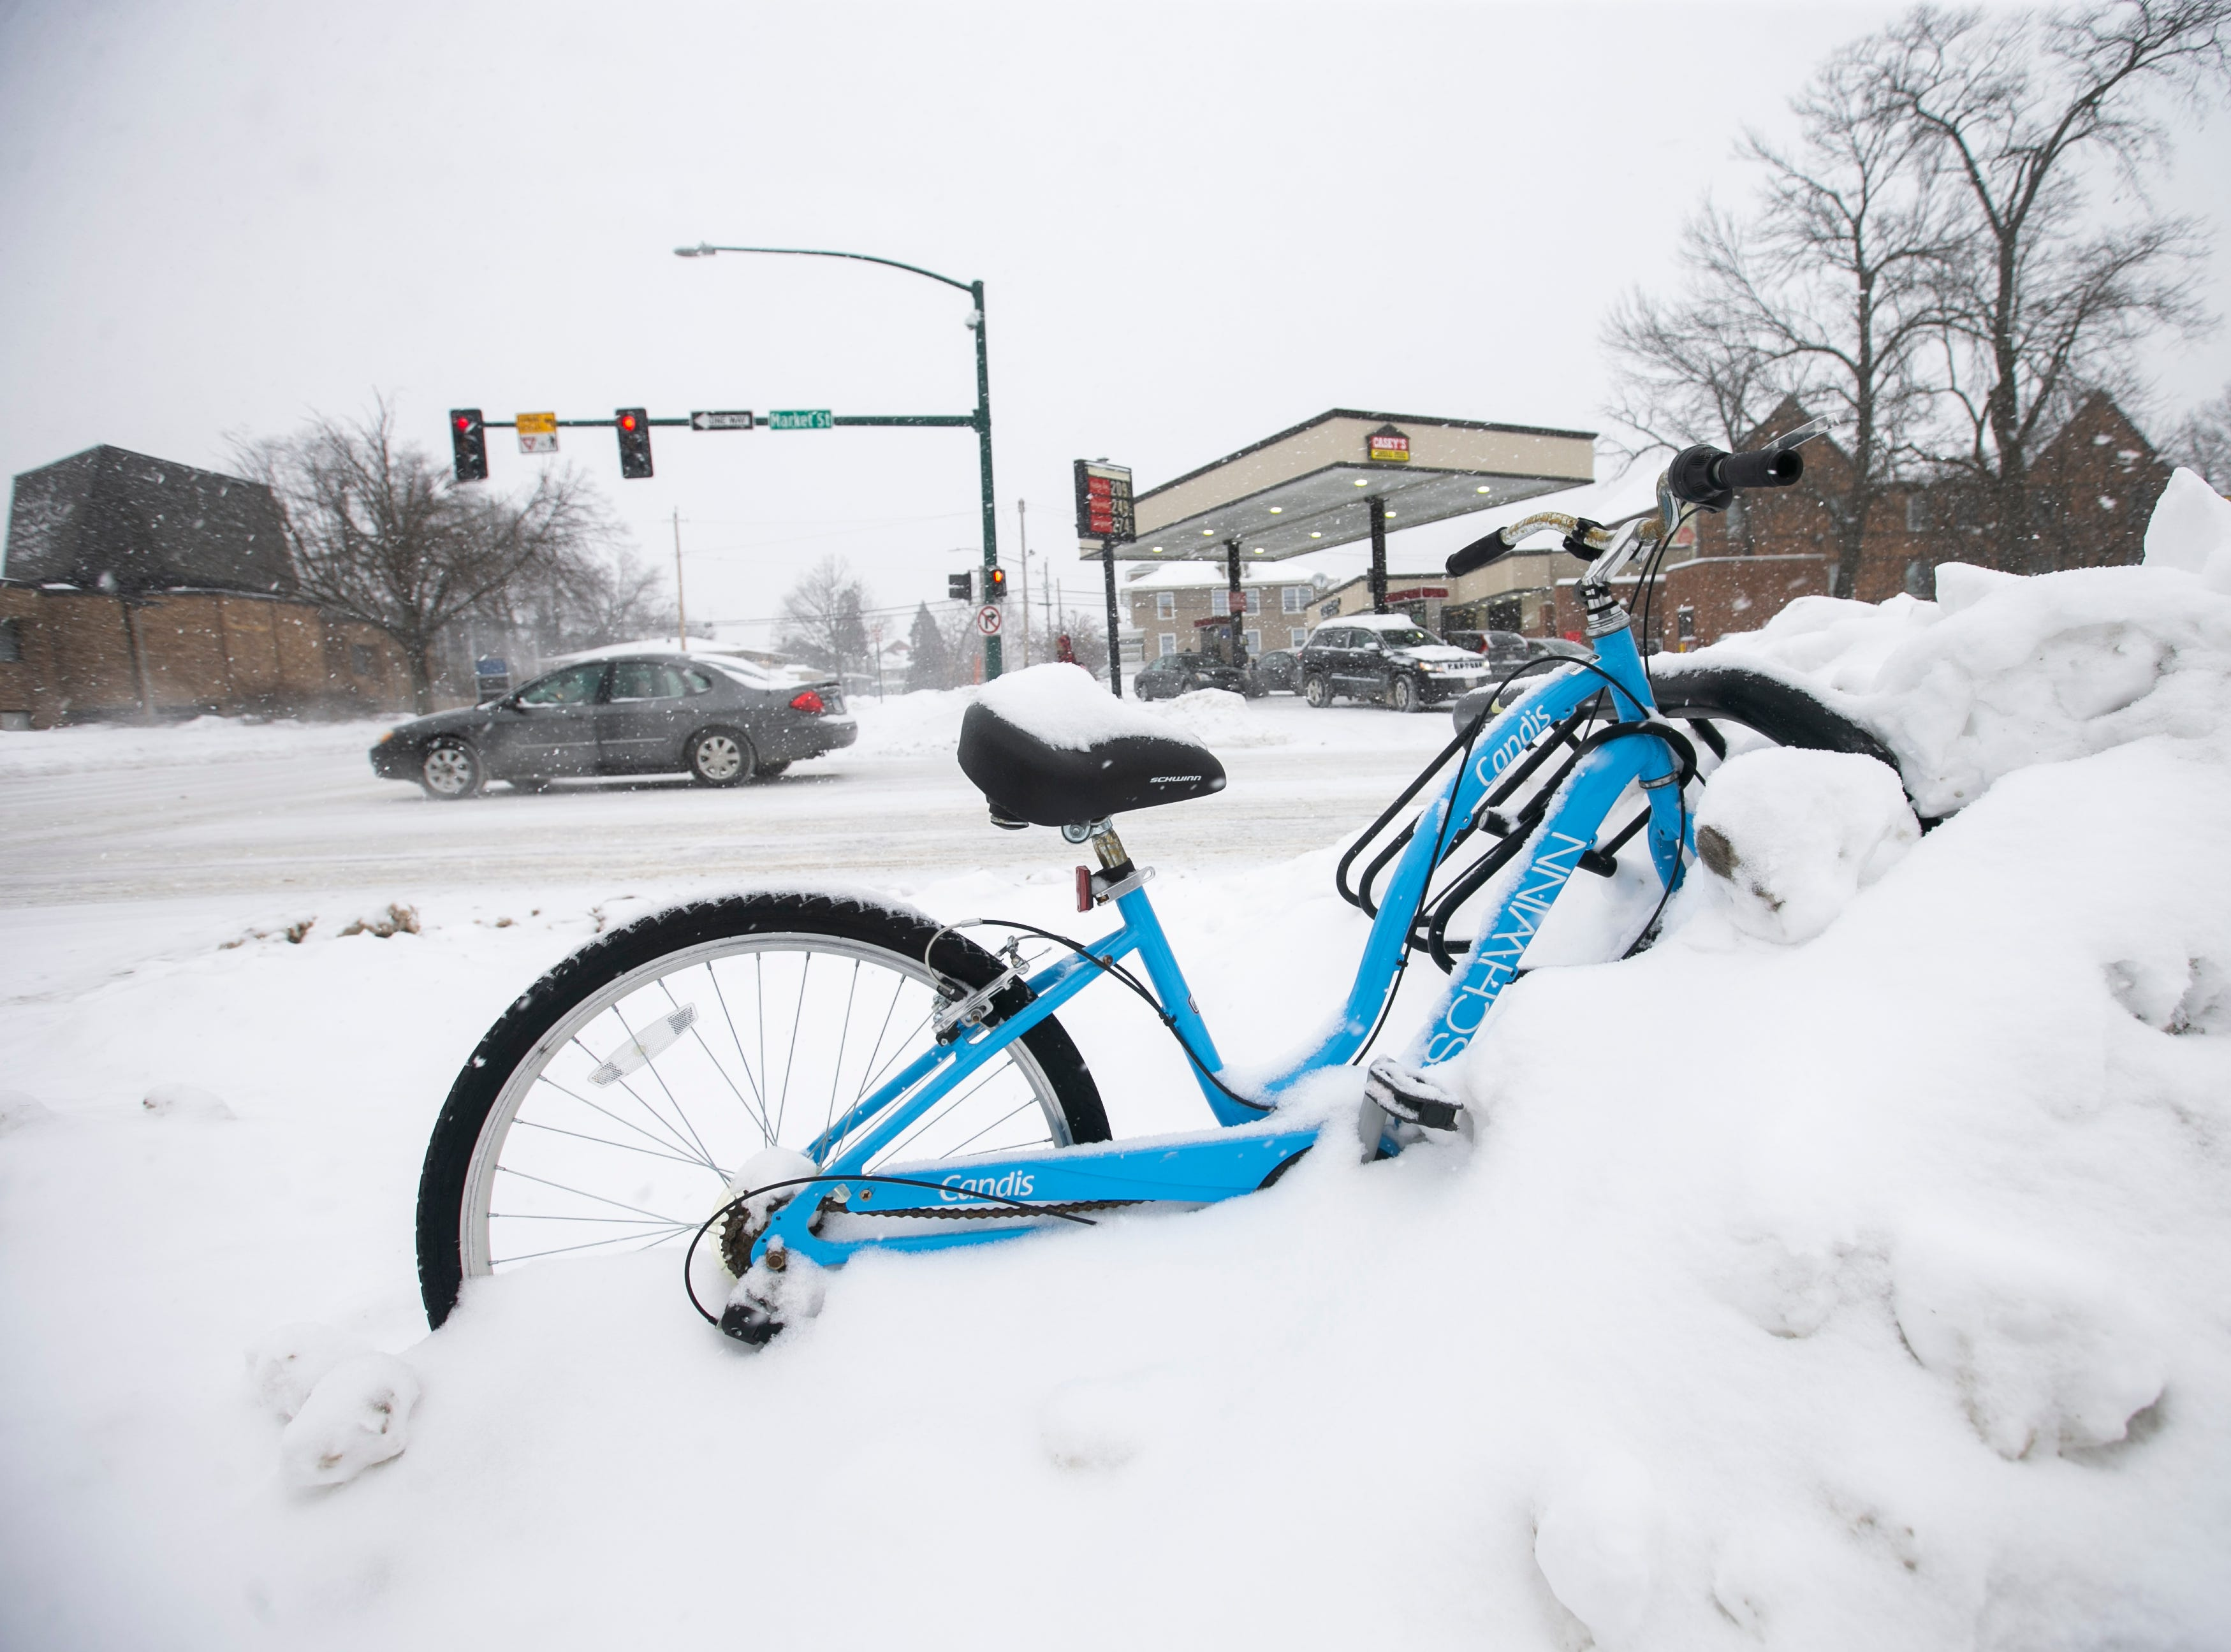 A bicycle gets packed in with snow as snow falls on Thursday, Jan. 31, 2019, in downtown Iowa City, Iowa.